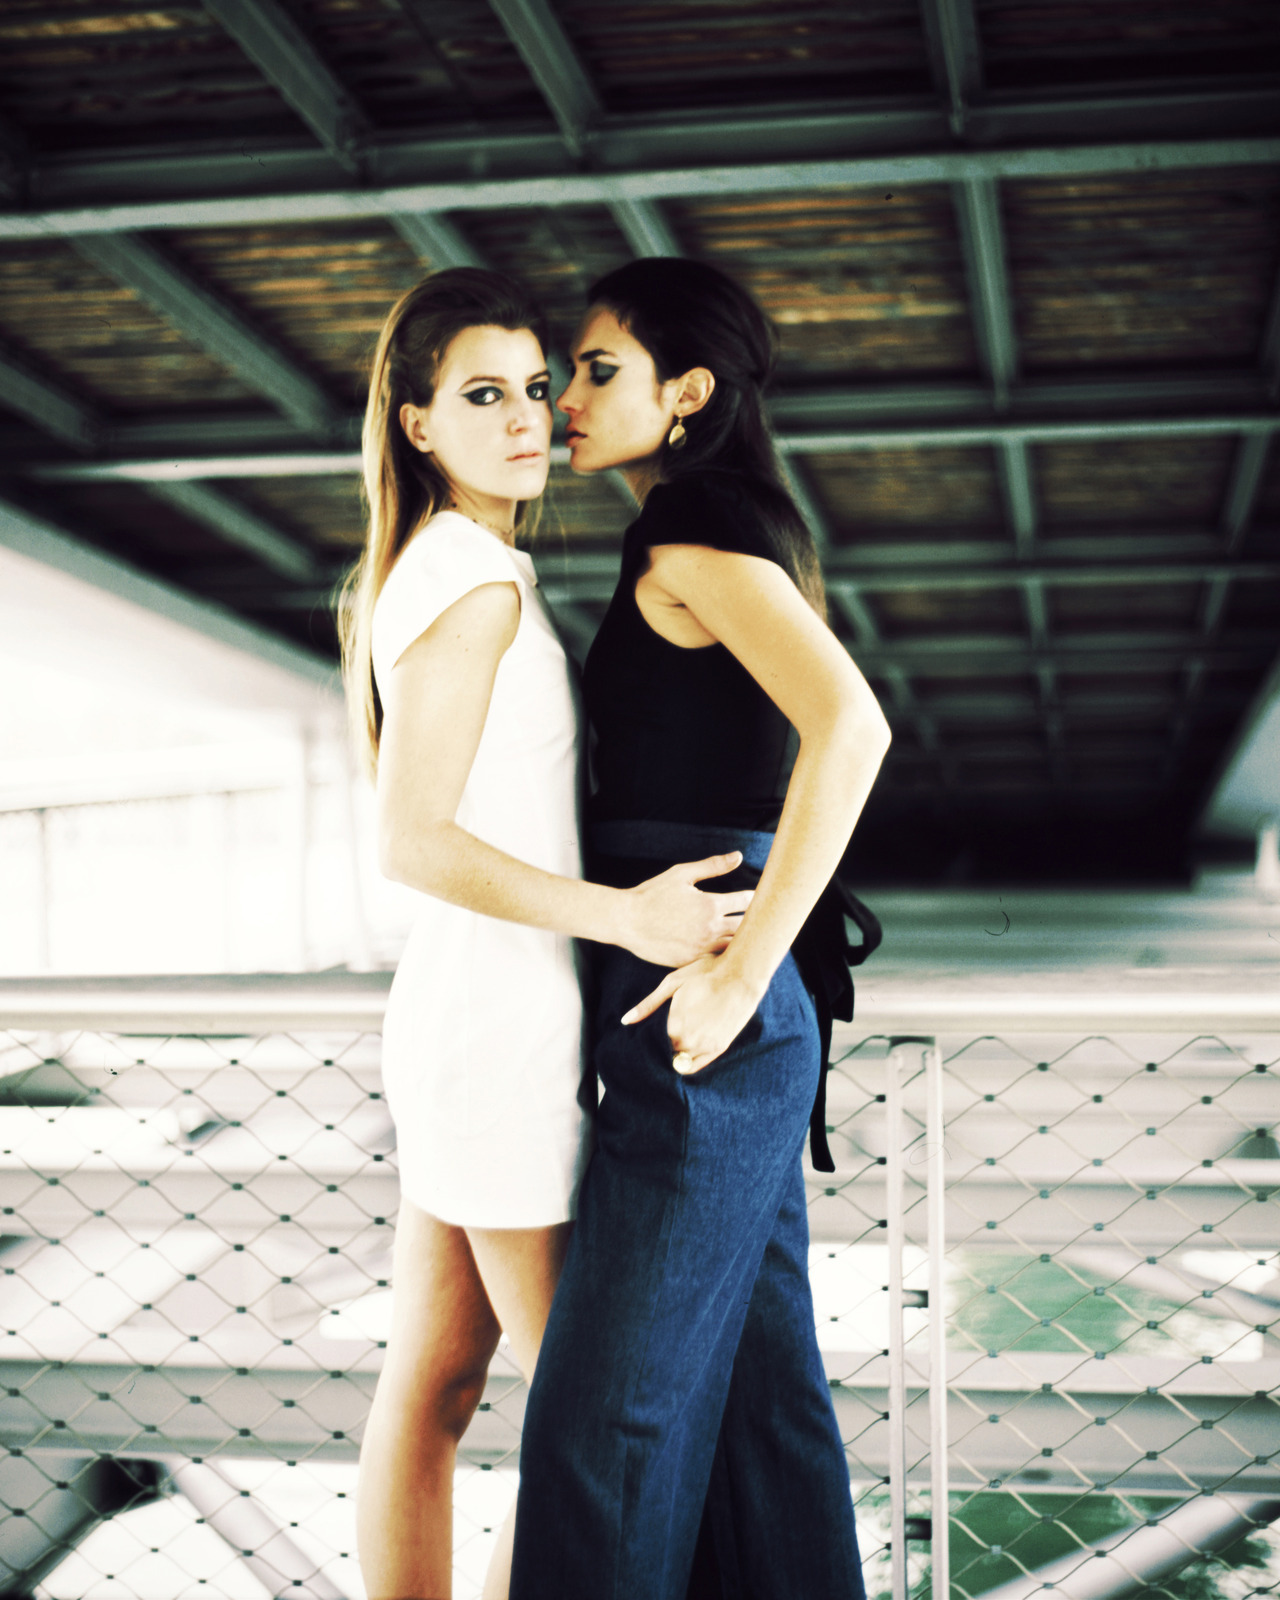 istillshootfilm:  Alison & Kelly | Shot with a Kiev 88 and Fuji Provia 100F